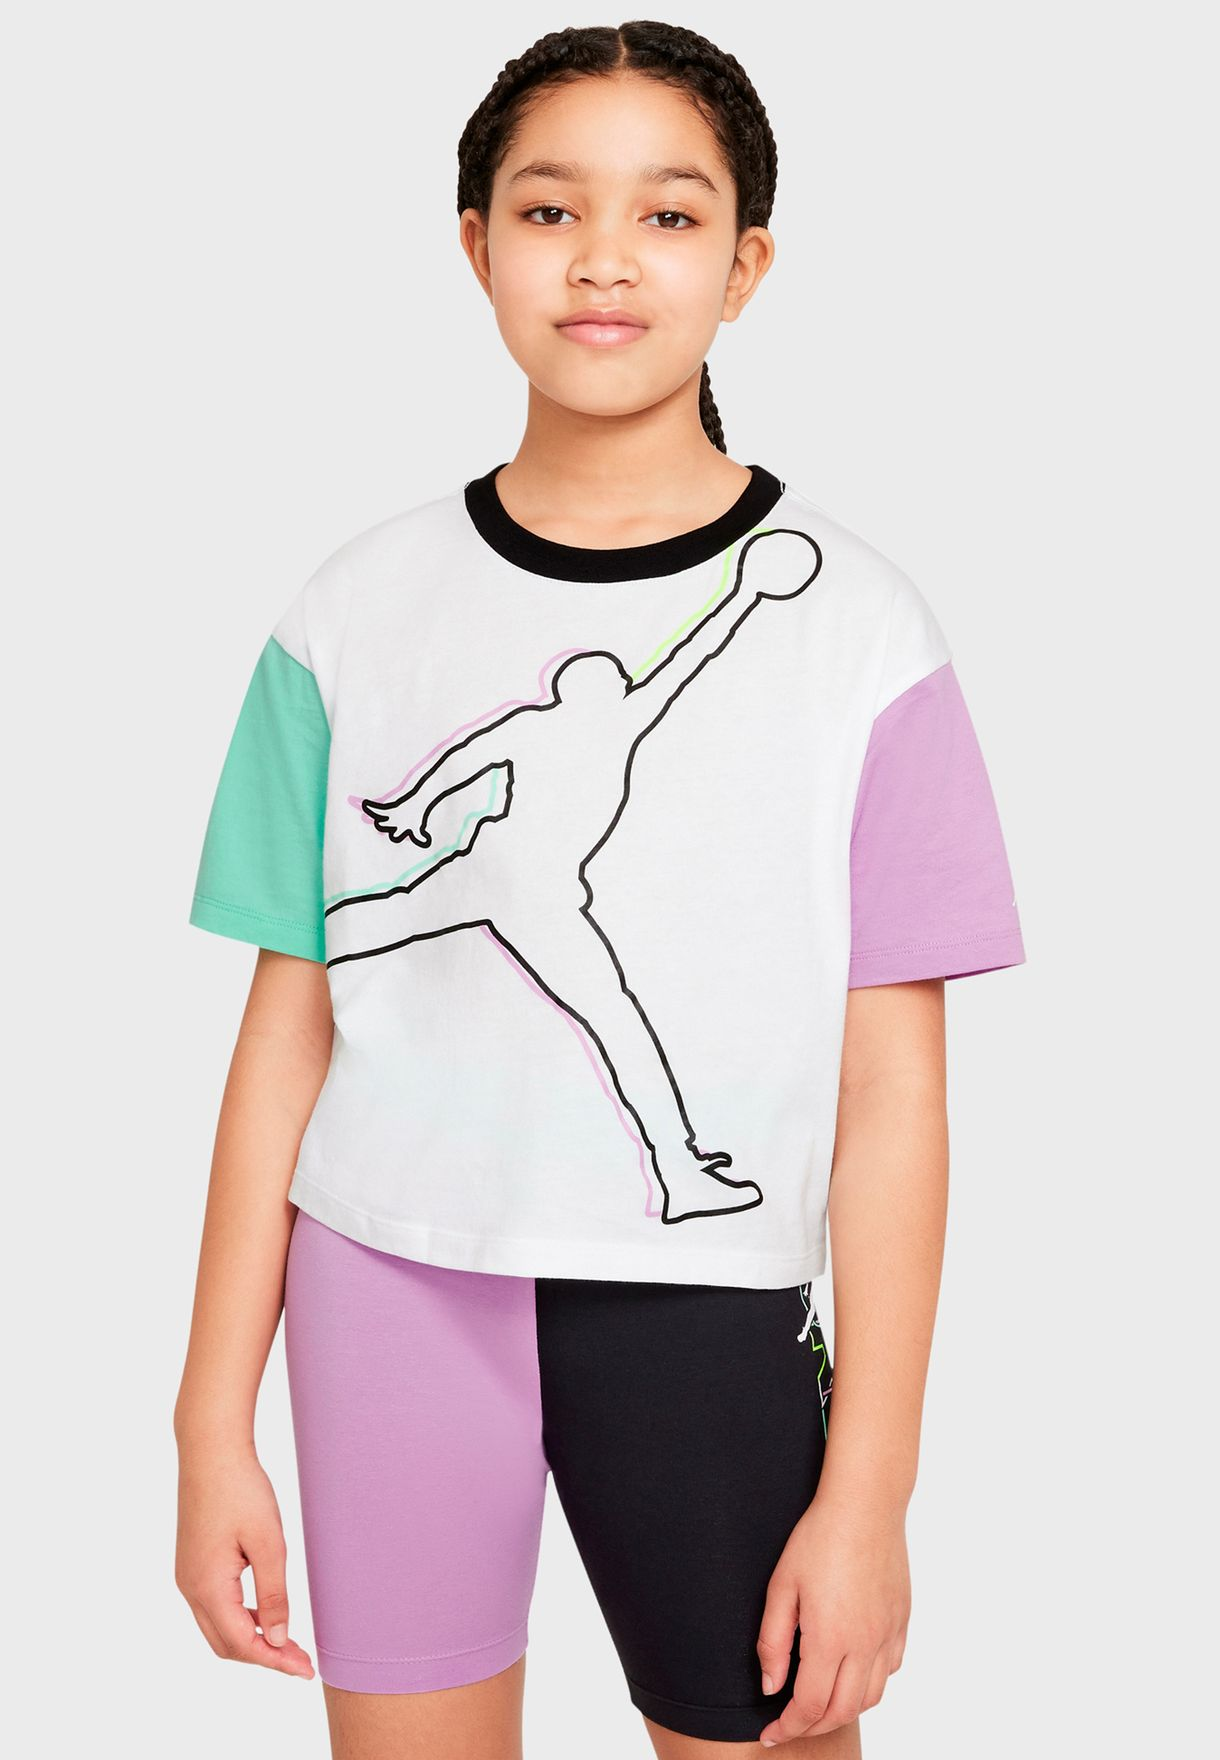 Youth Jordan J's Are For Girls T-Shirt